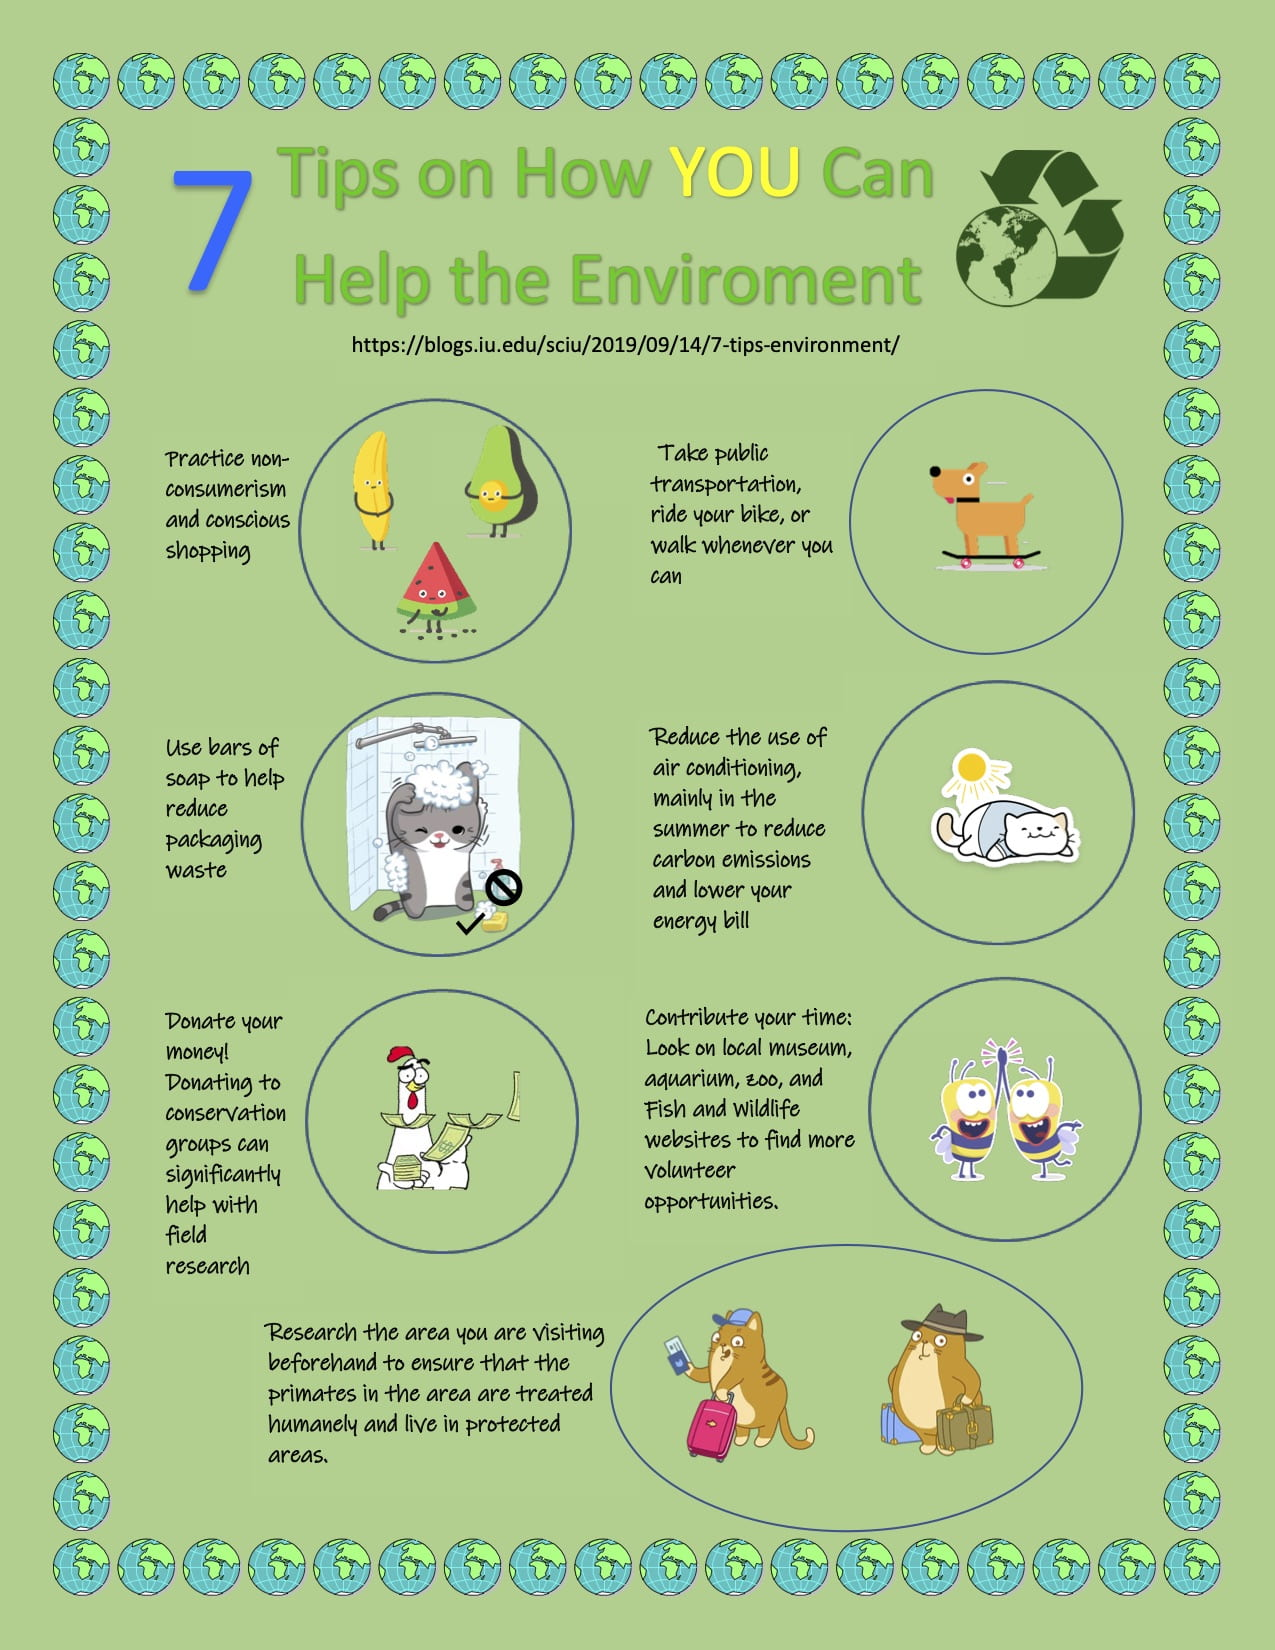 [infographic about environment friendly tips. to read the original post go to https://blogs.iu.edu/sciu/2019/09/14/7-tips-environment/]